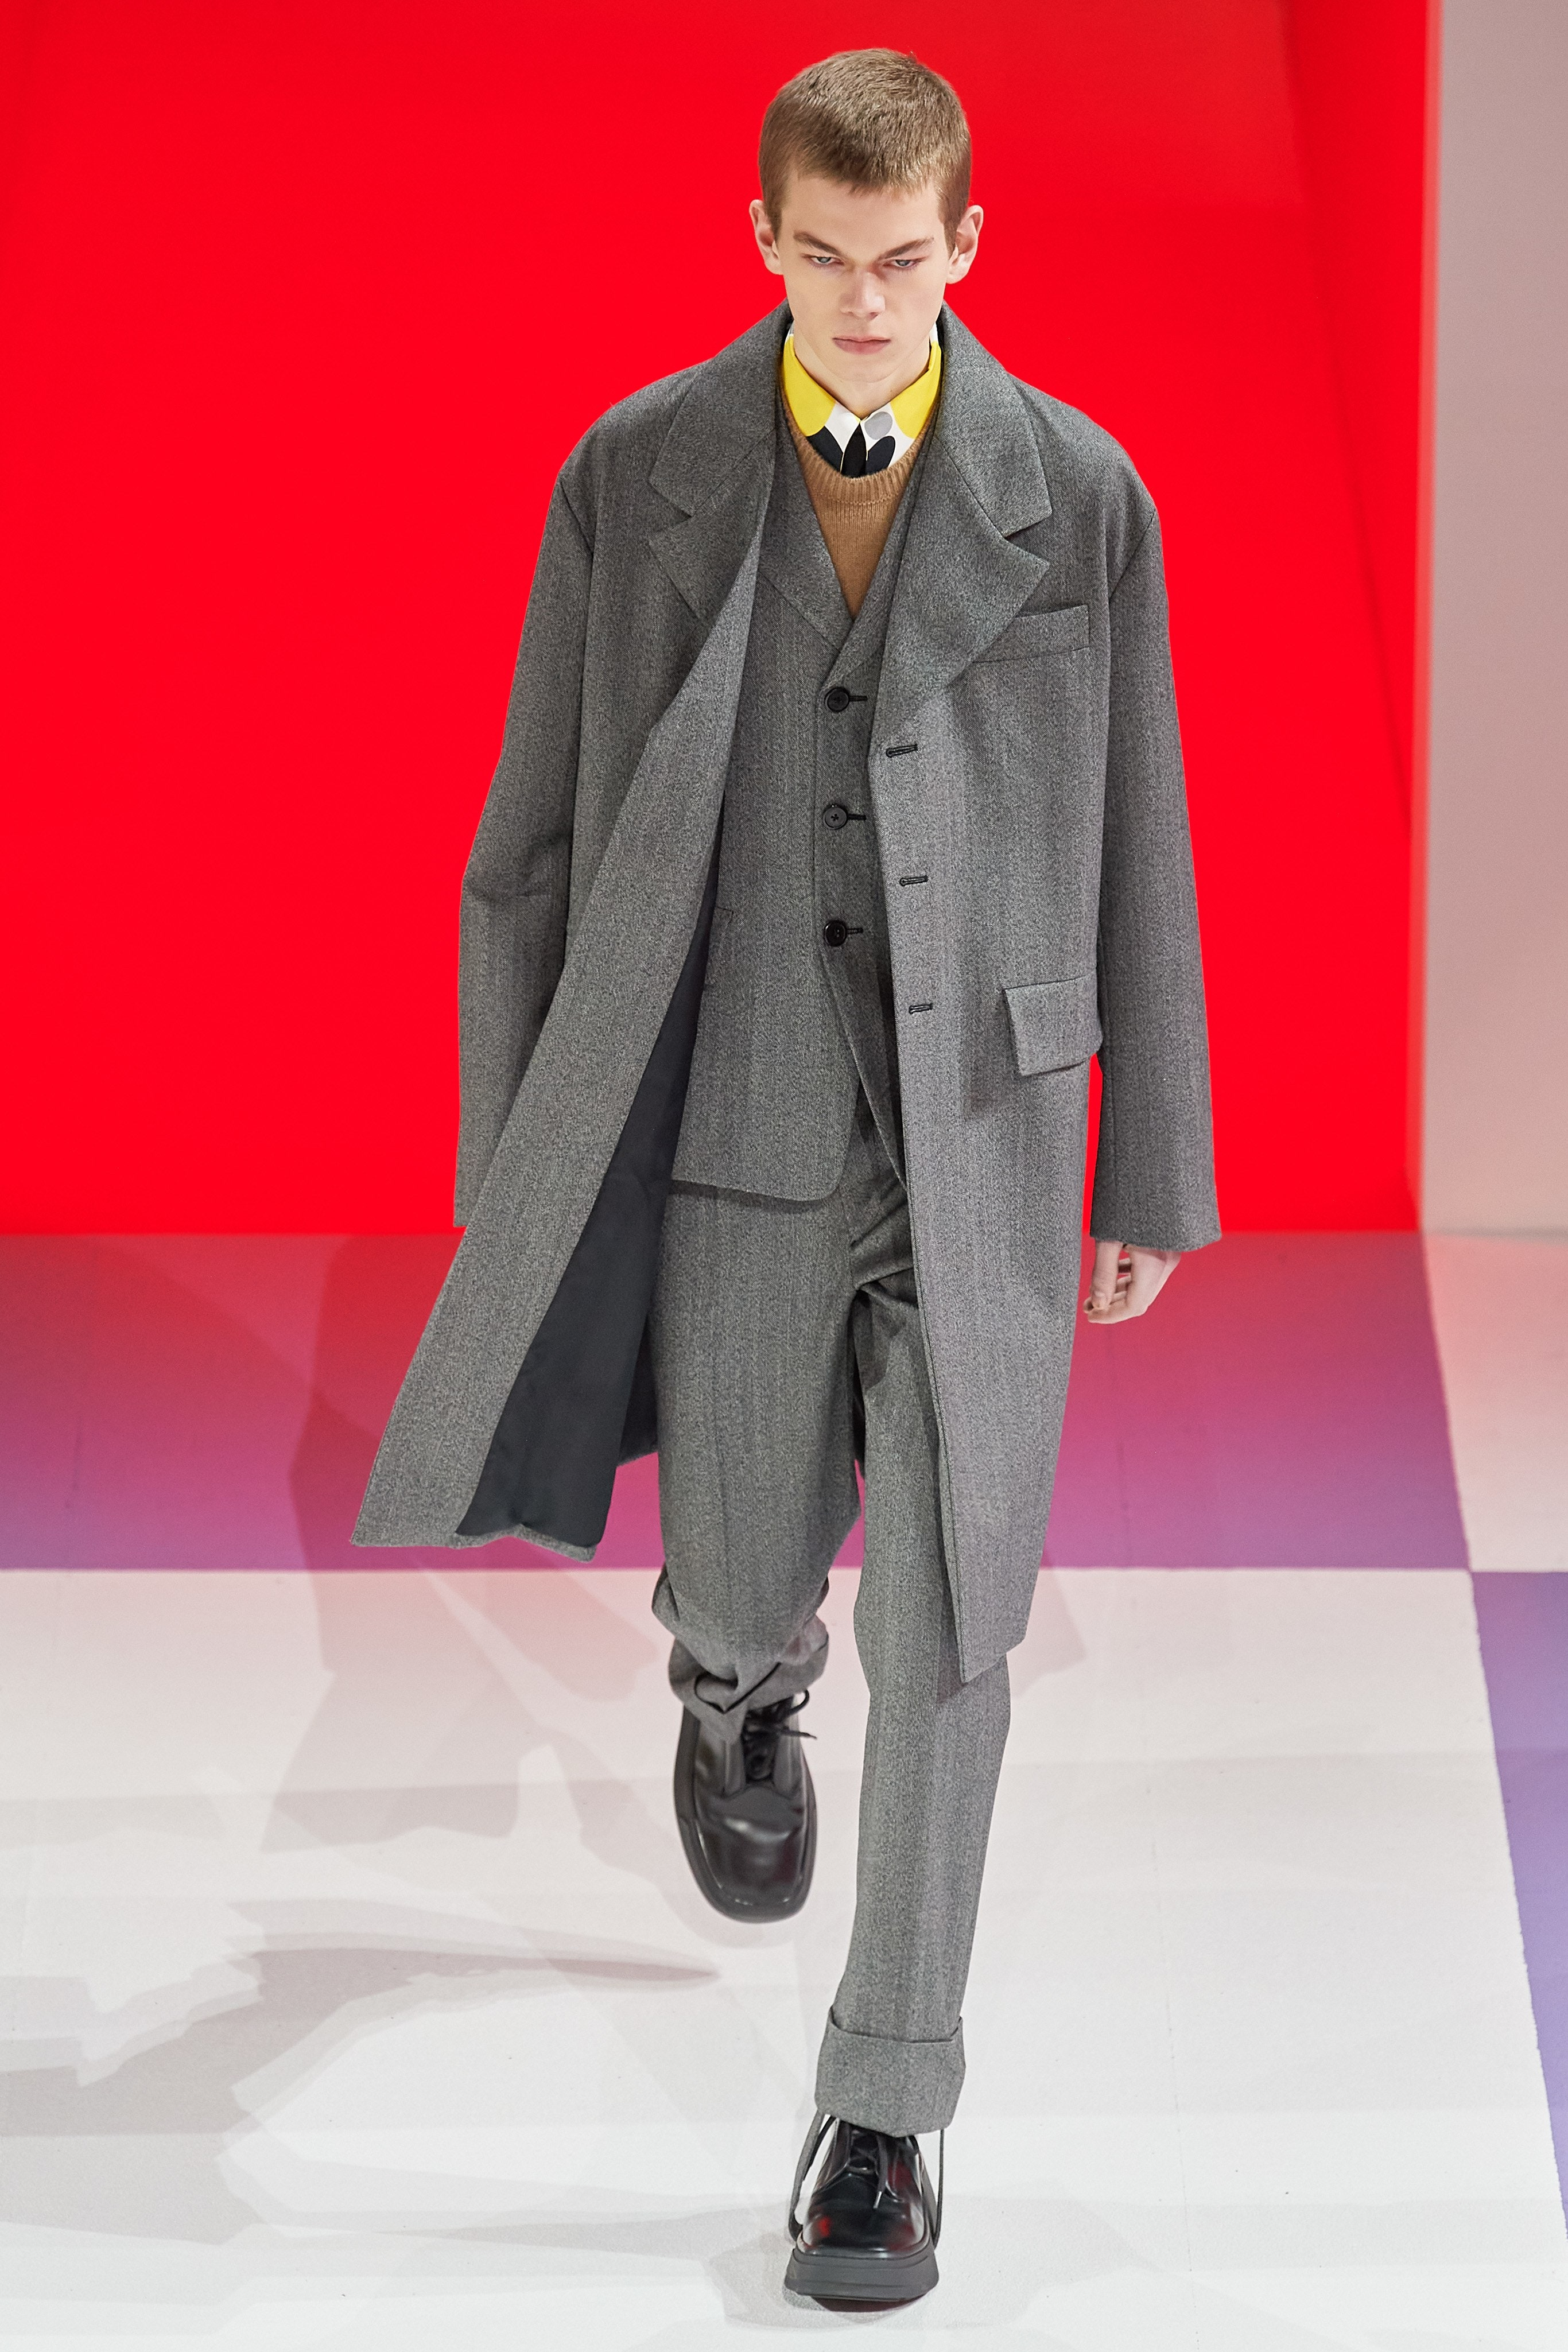 A Look at the Prada Fall 2020 Menswear Collection prada fall 2020 A Look at the Prada Fall 2020 Menswear Collection FIO1719